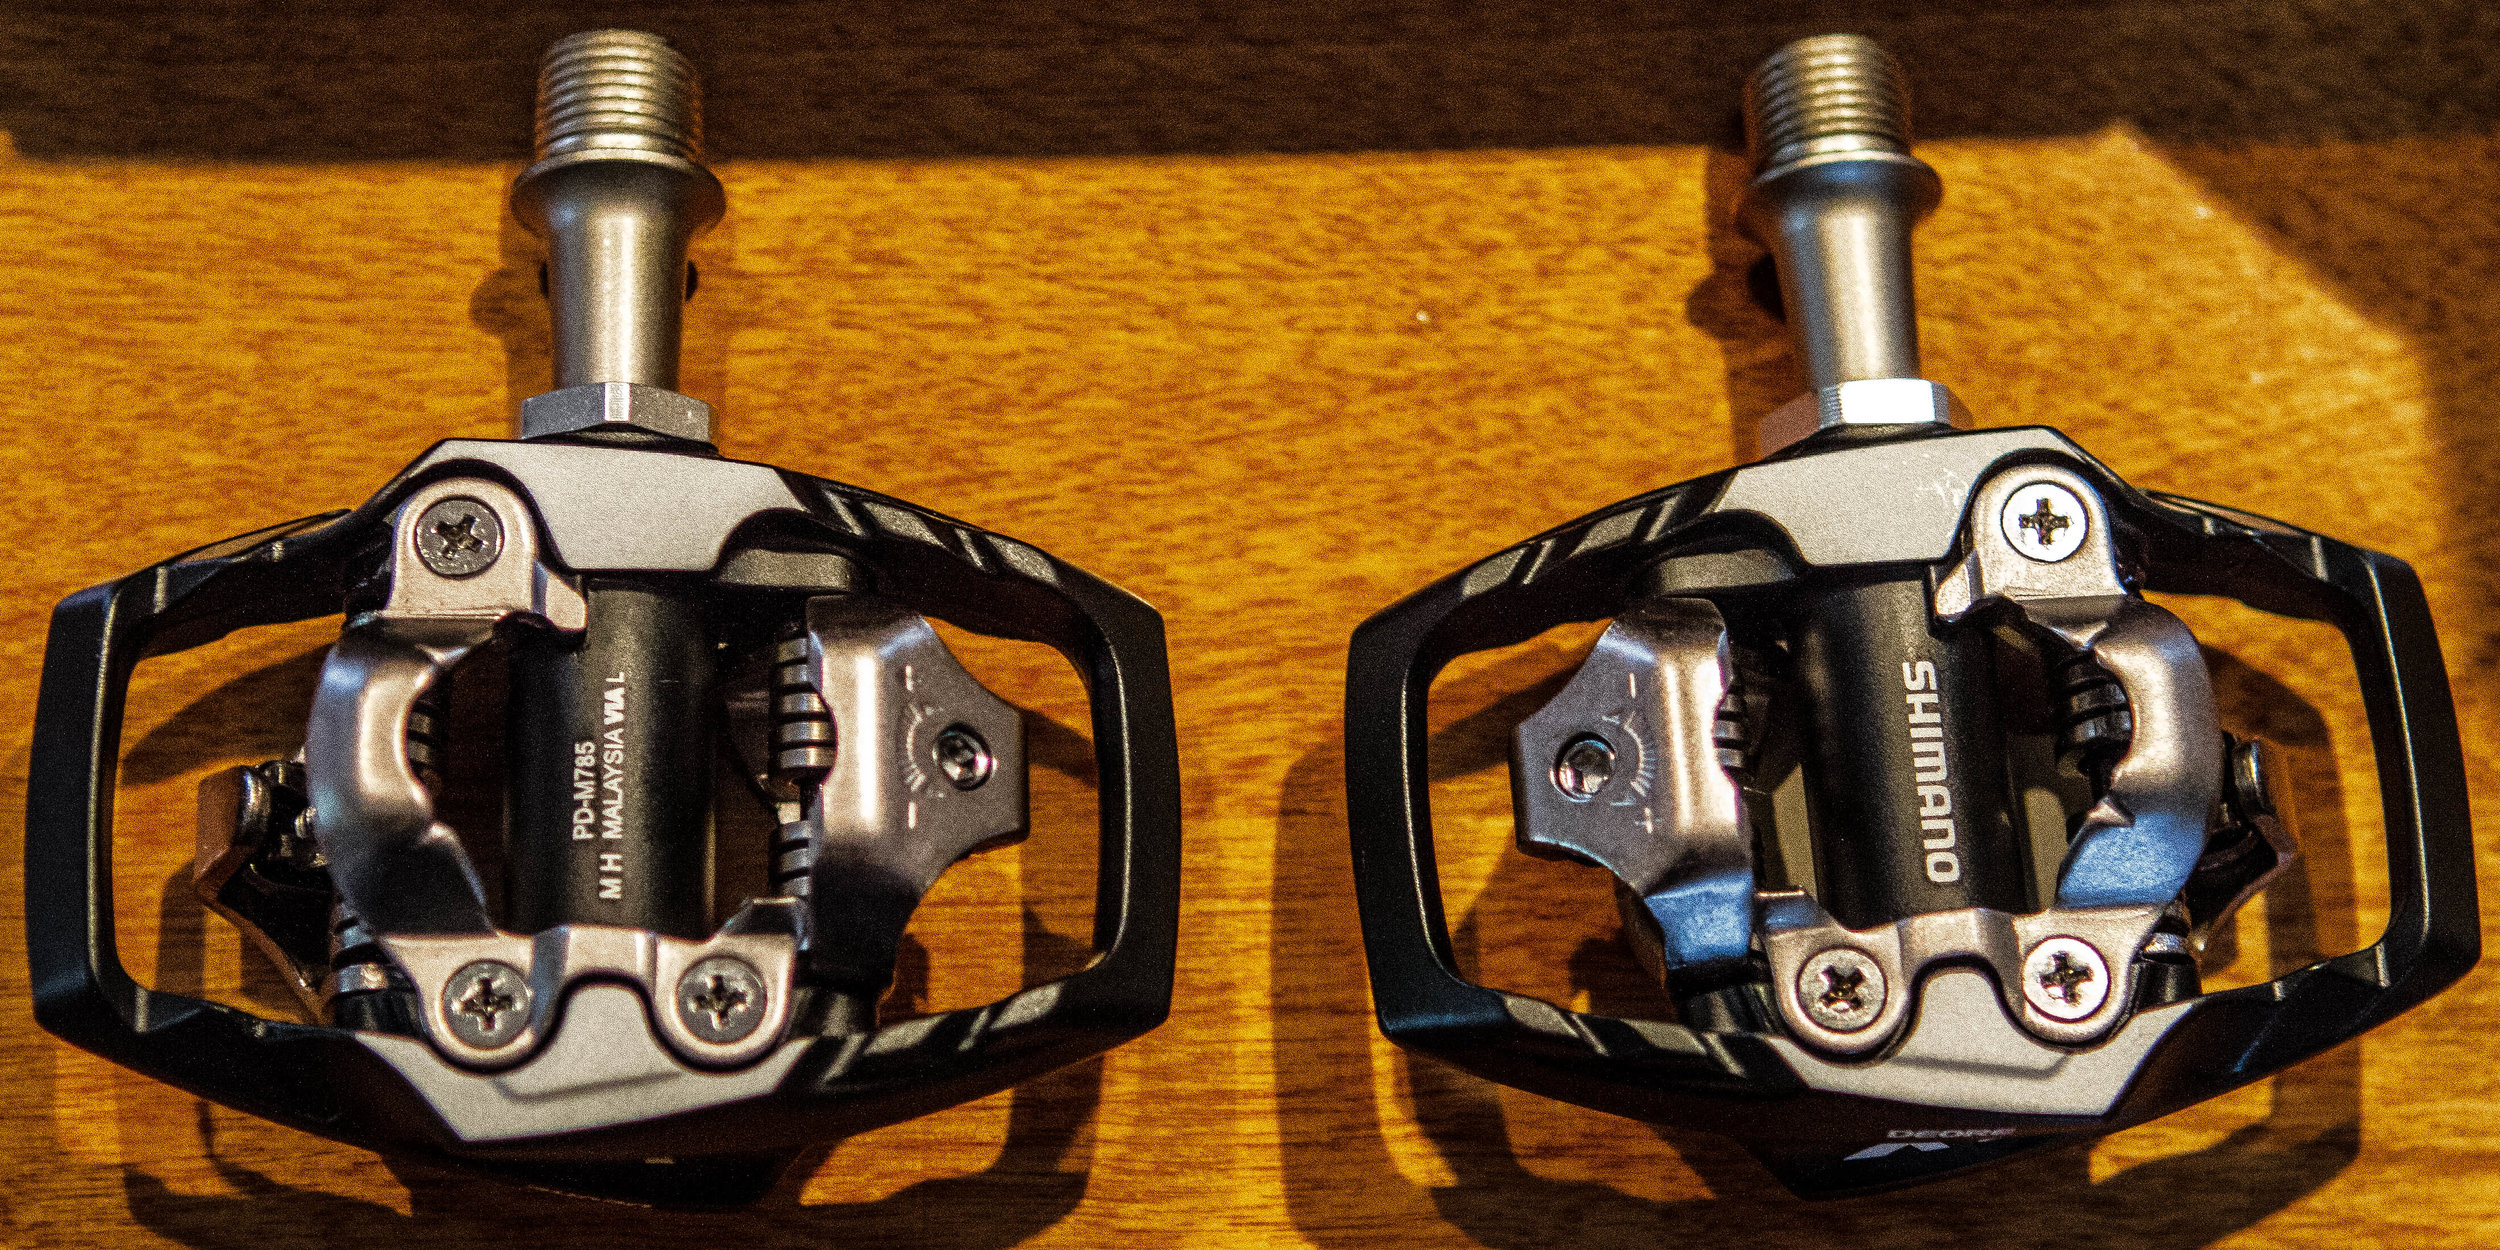 A set of Shimano XT Trail pedals